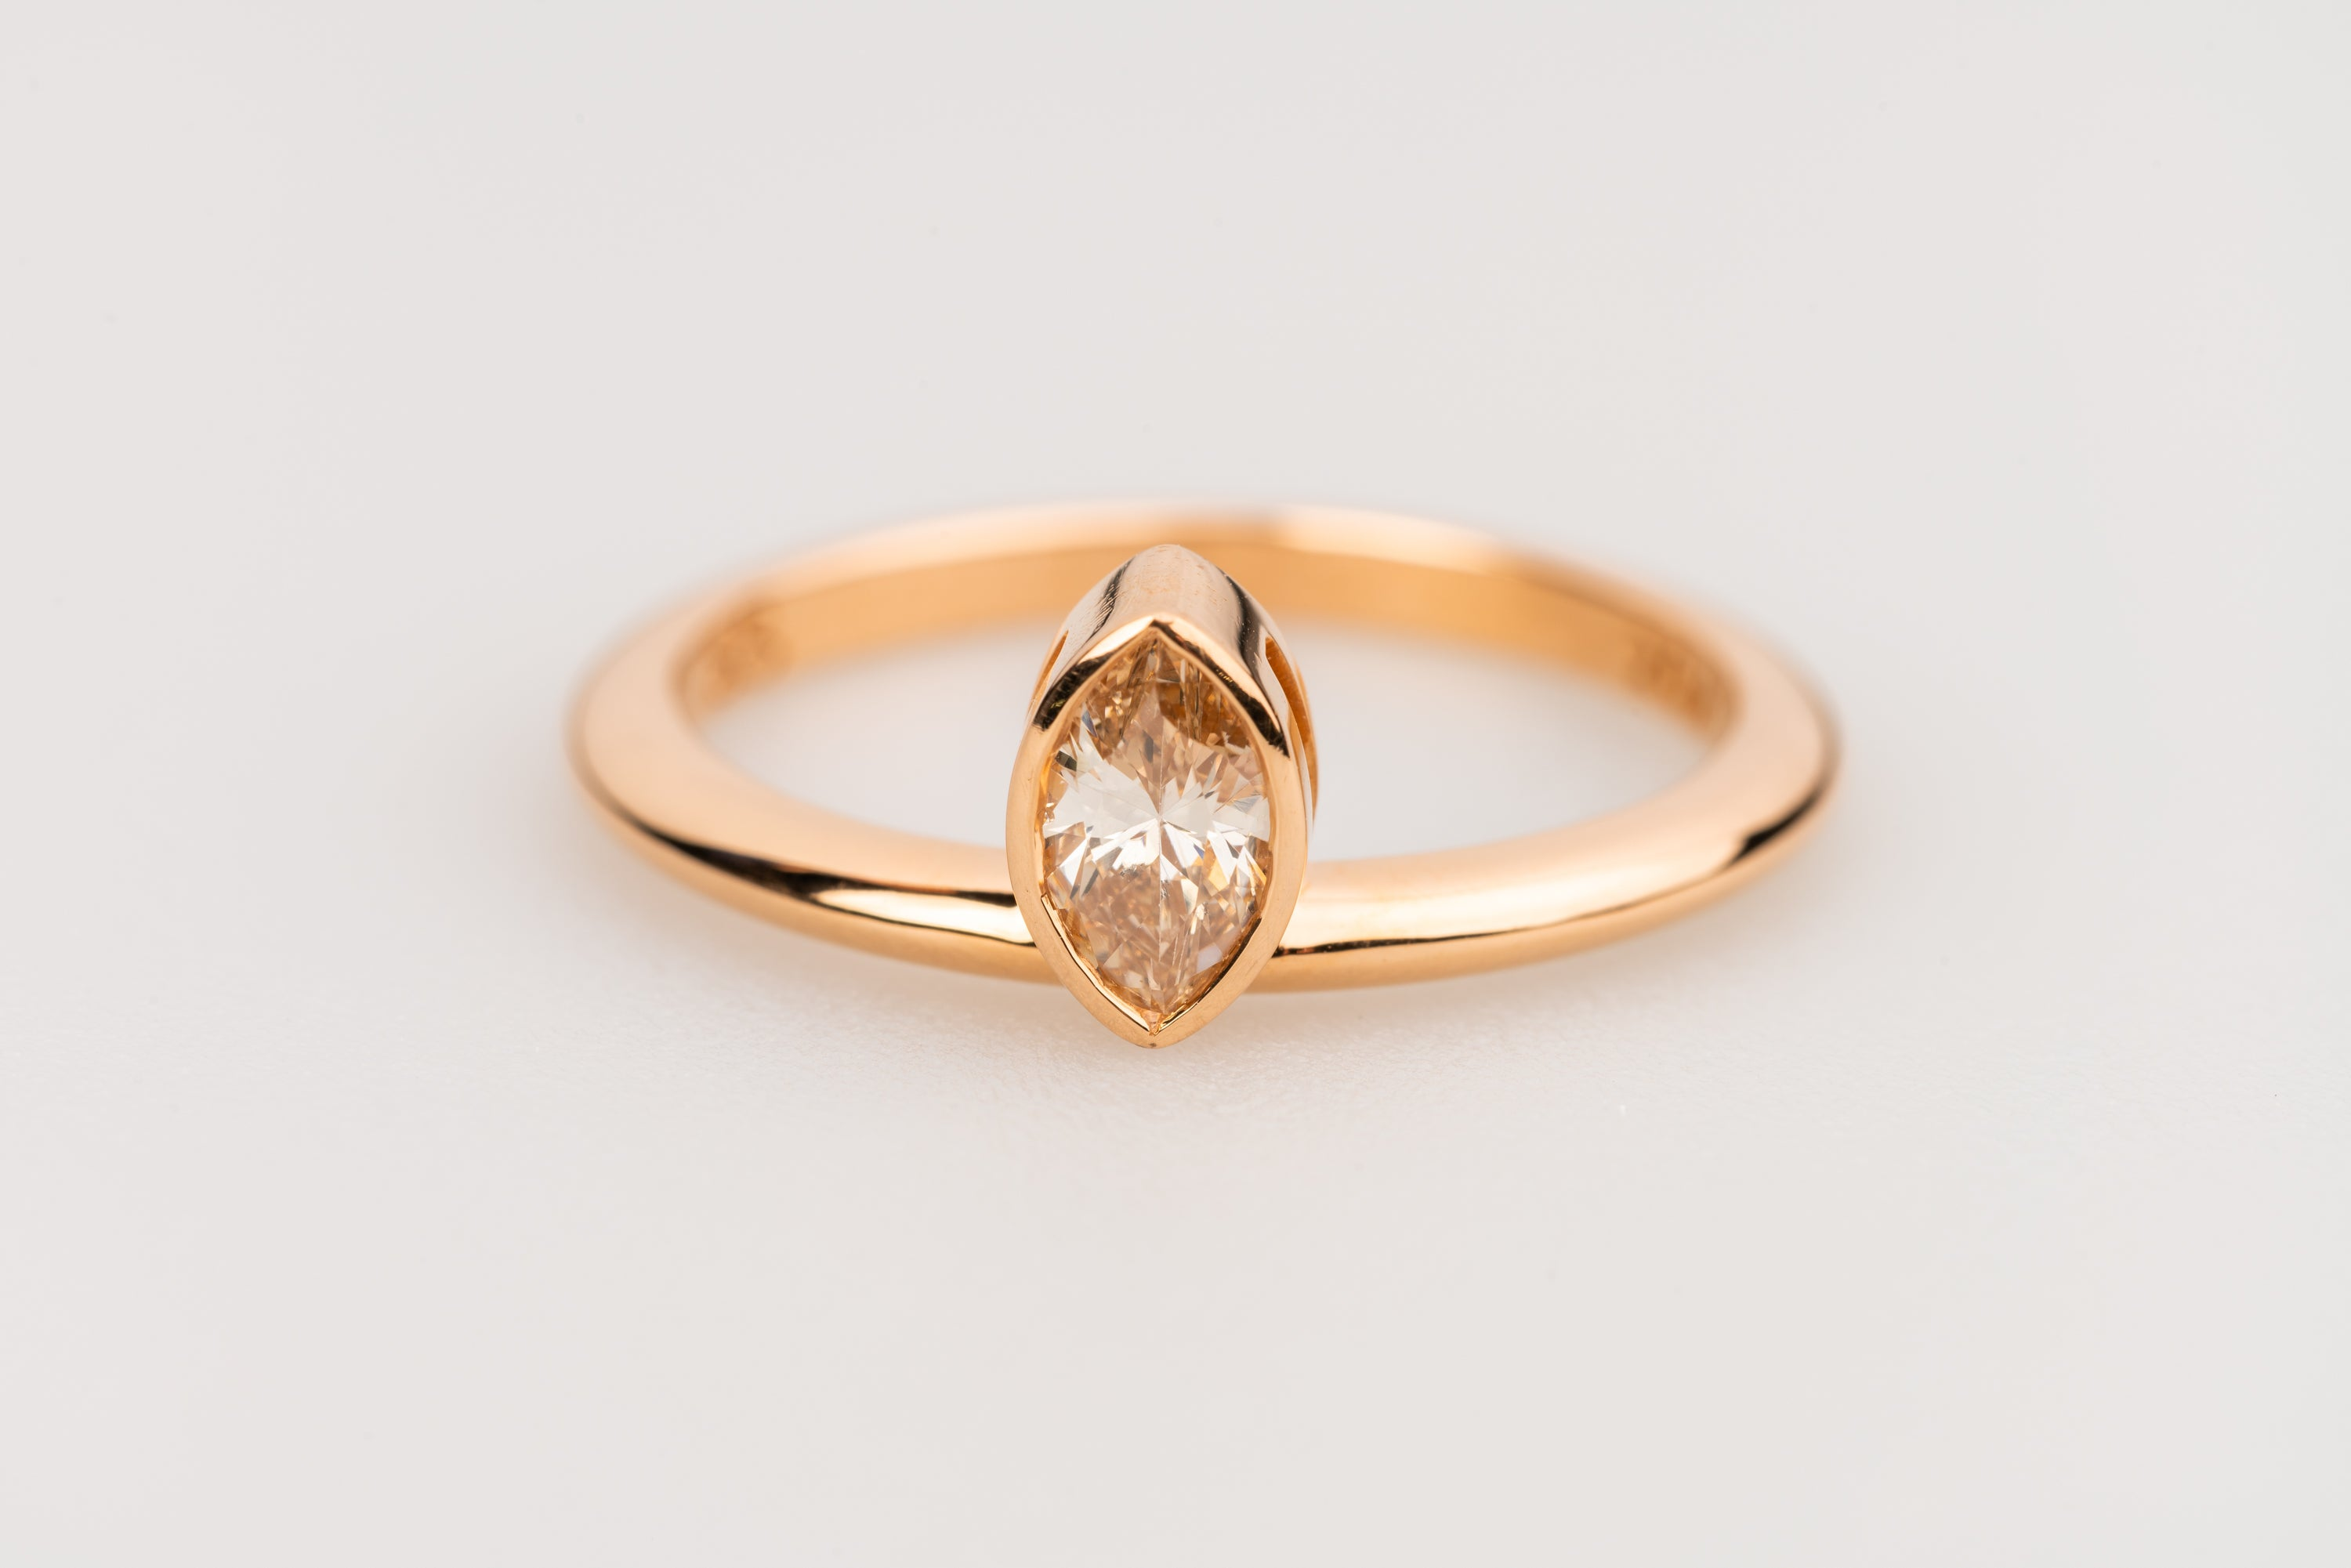 Marquise Shaped Champagne Diamond in 18k Rose Gold Ring